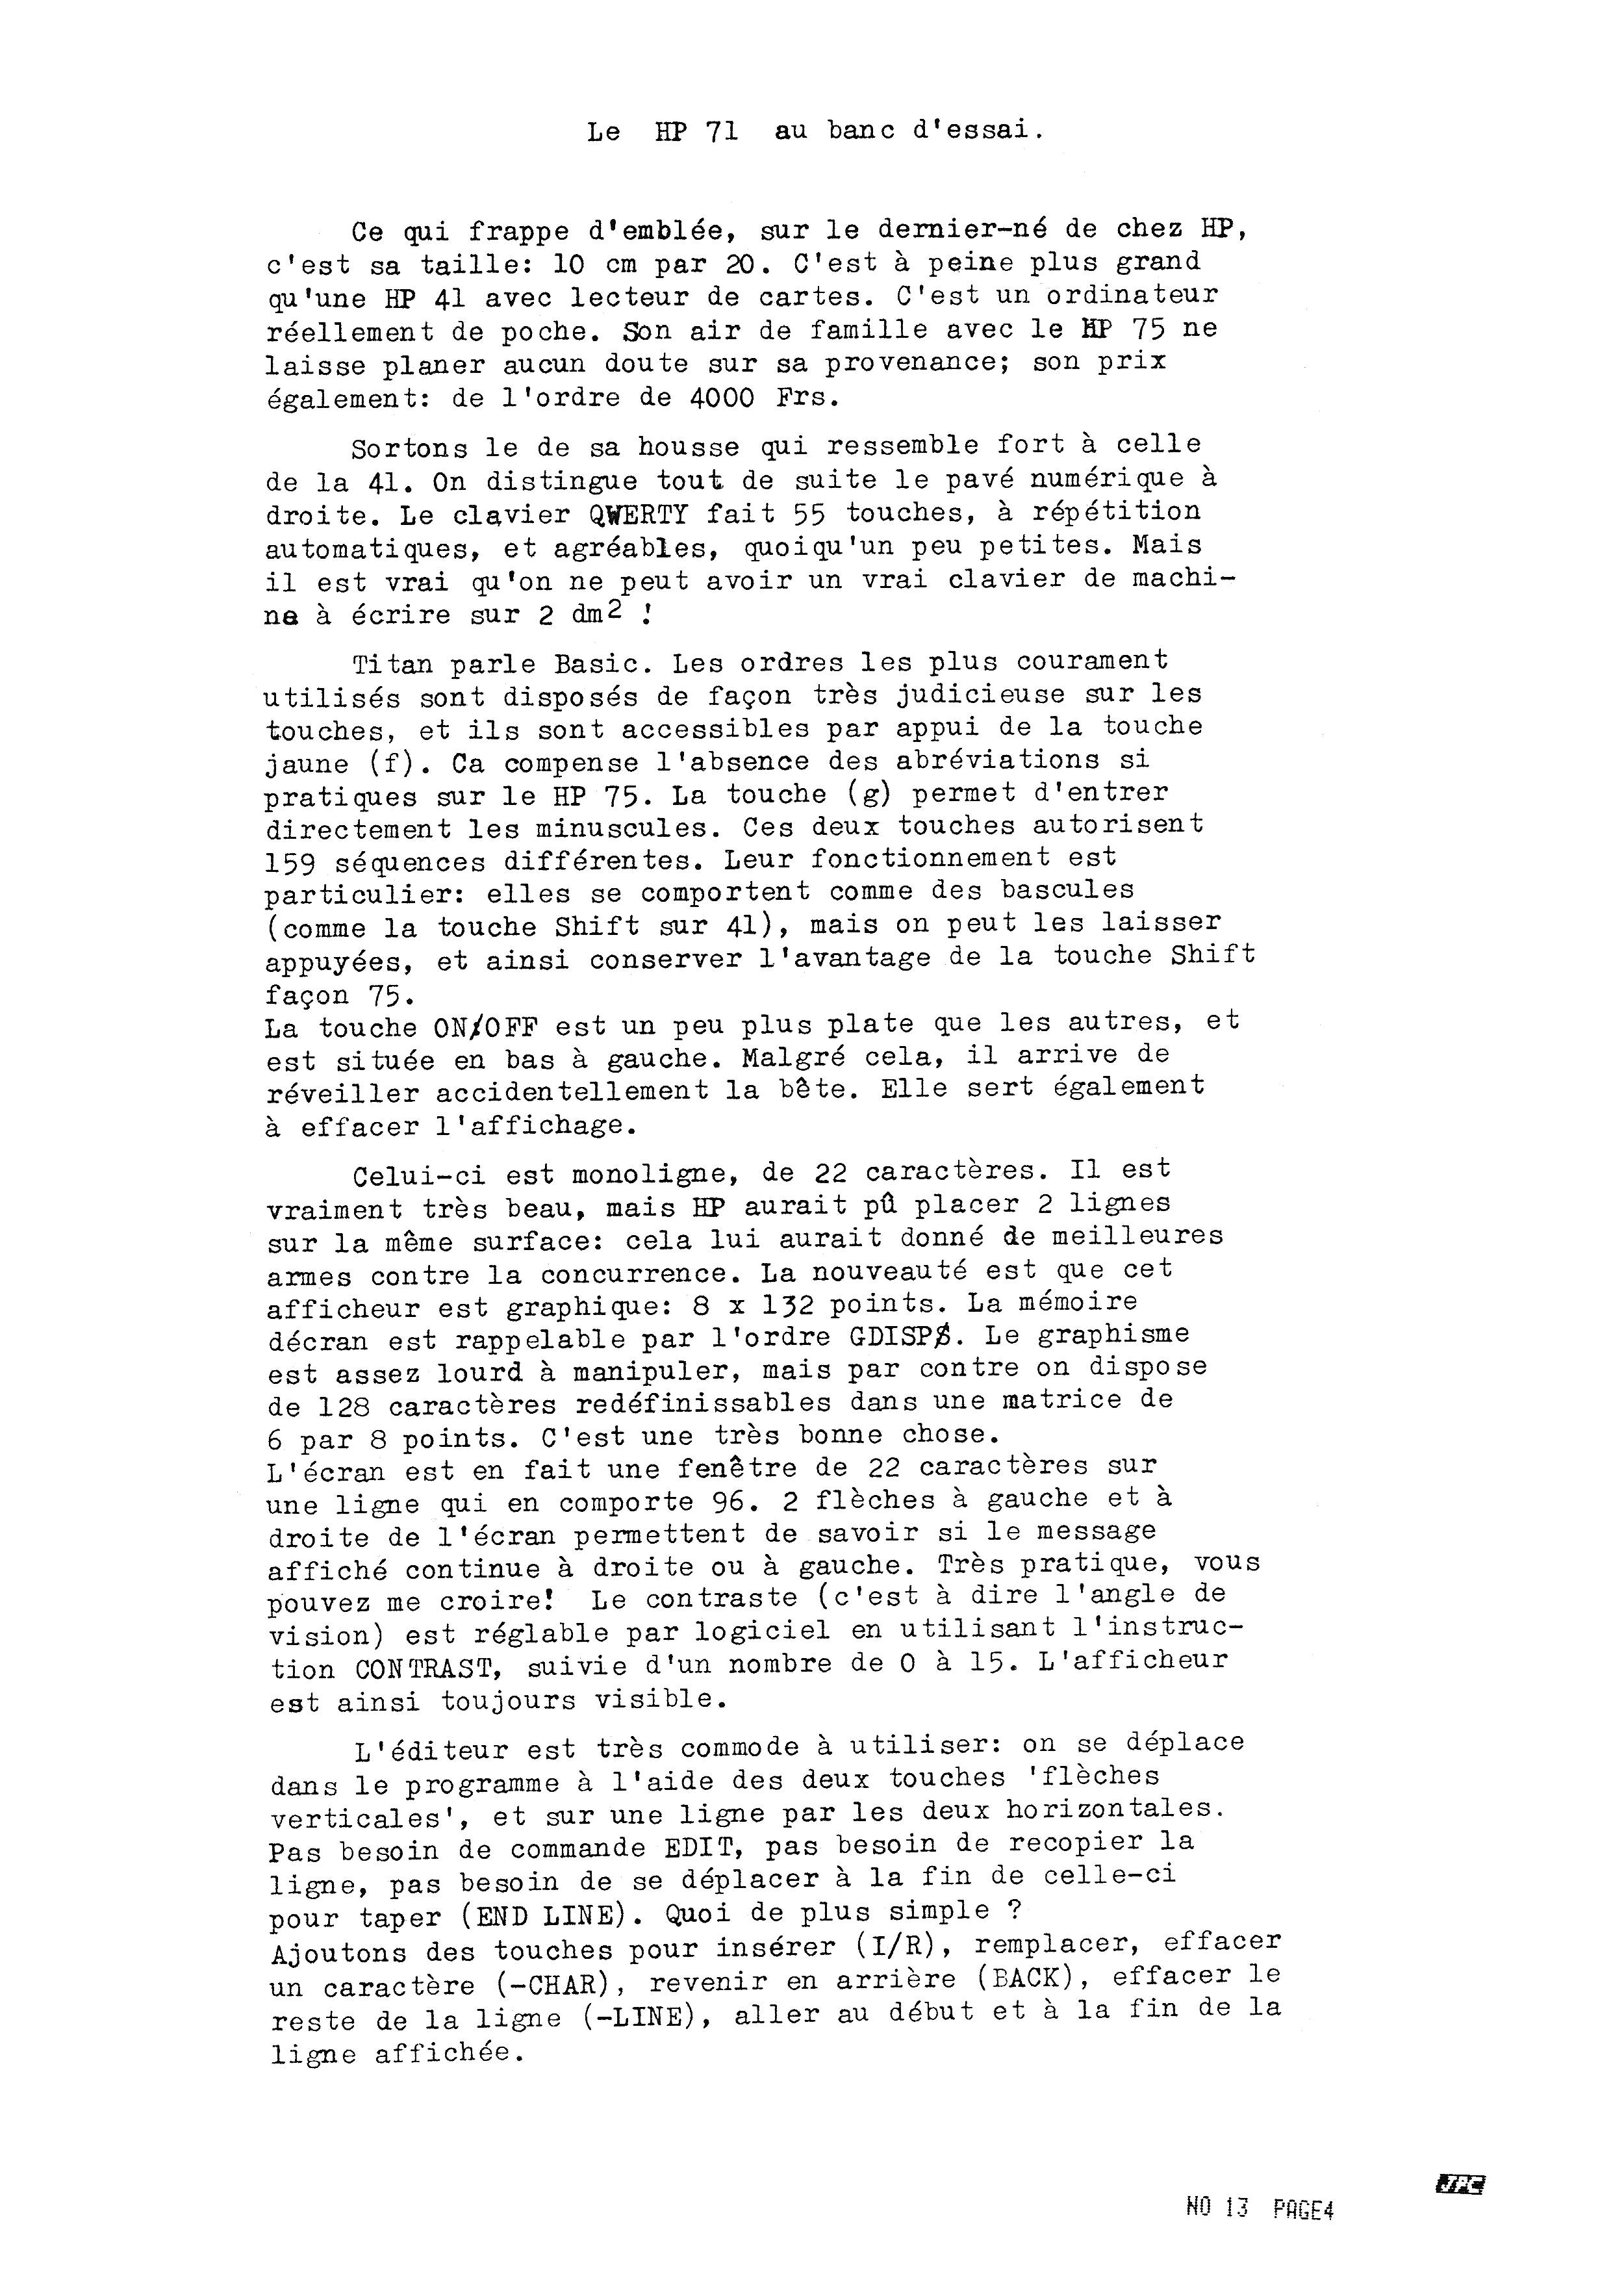 Jp-13-page-6-1000